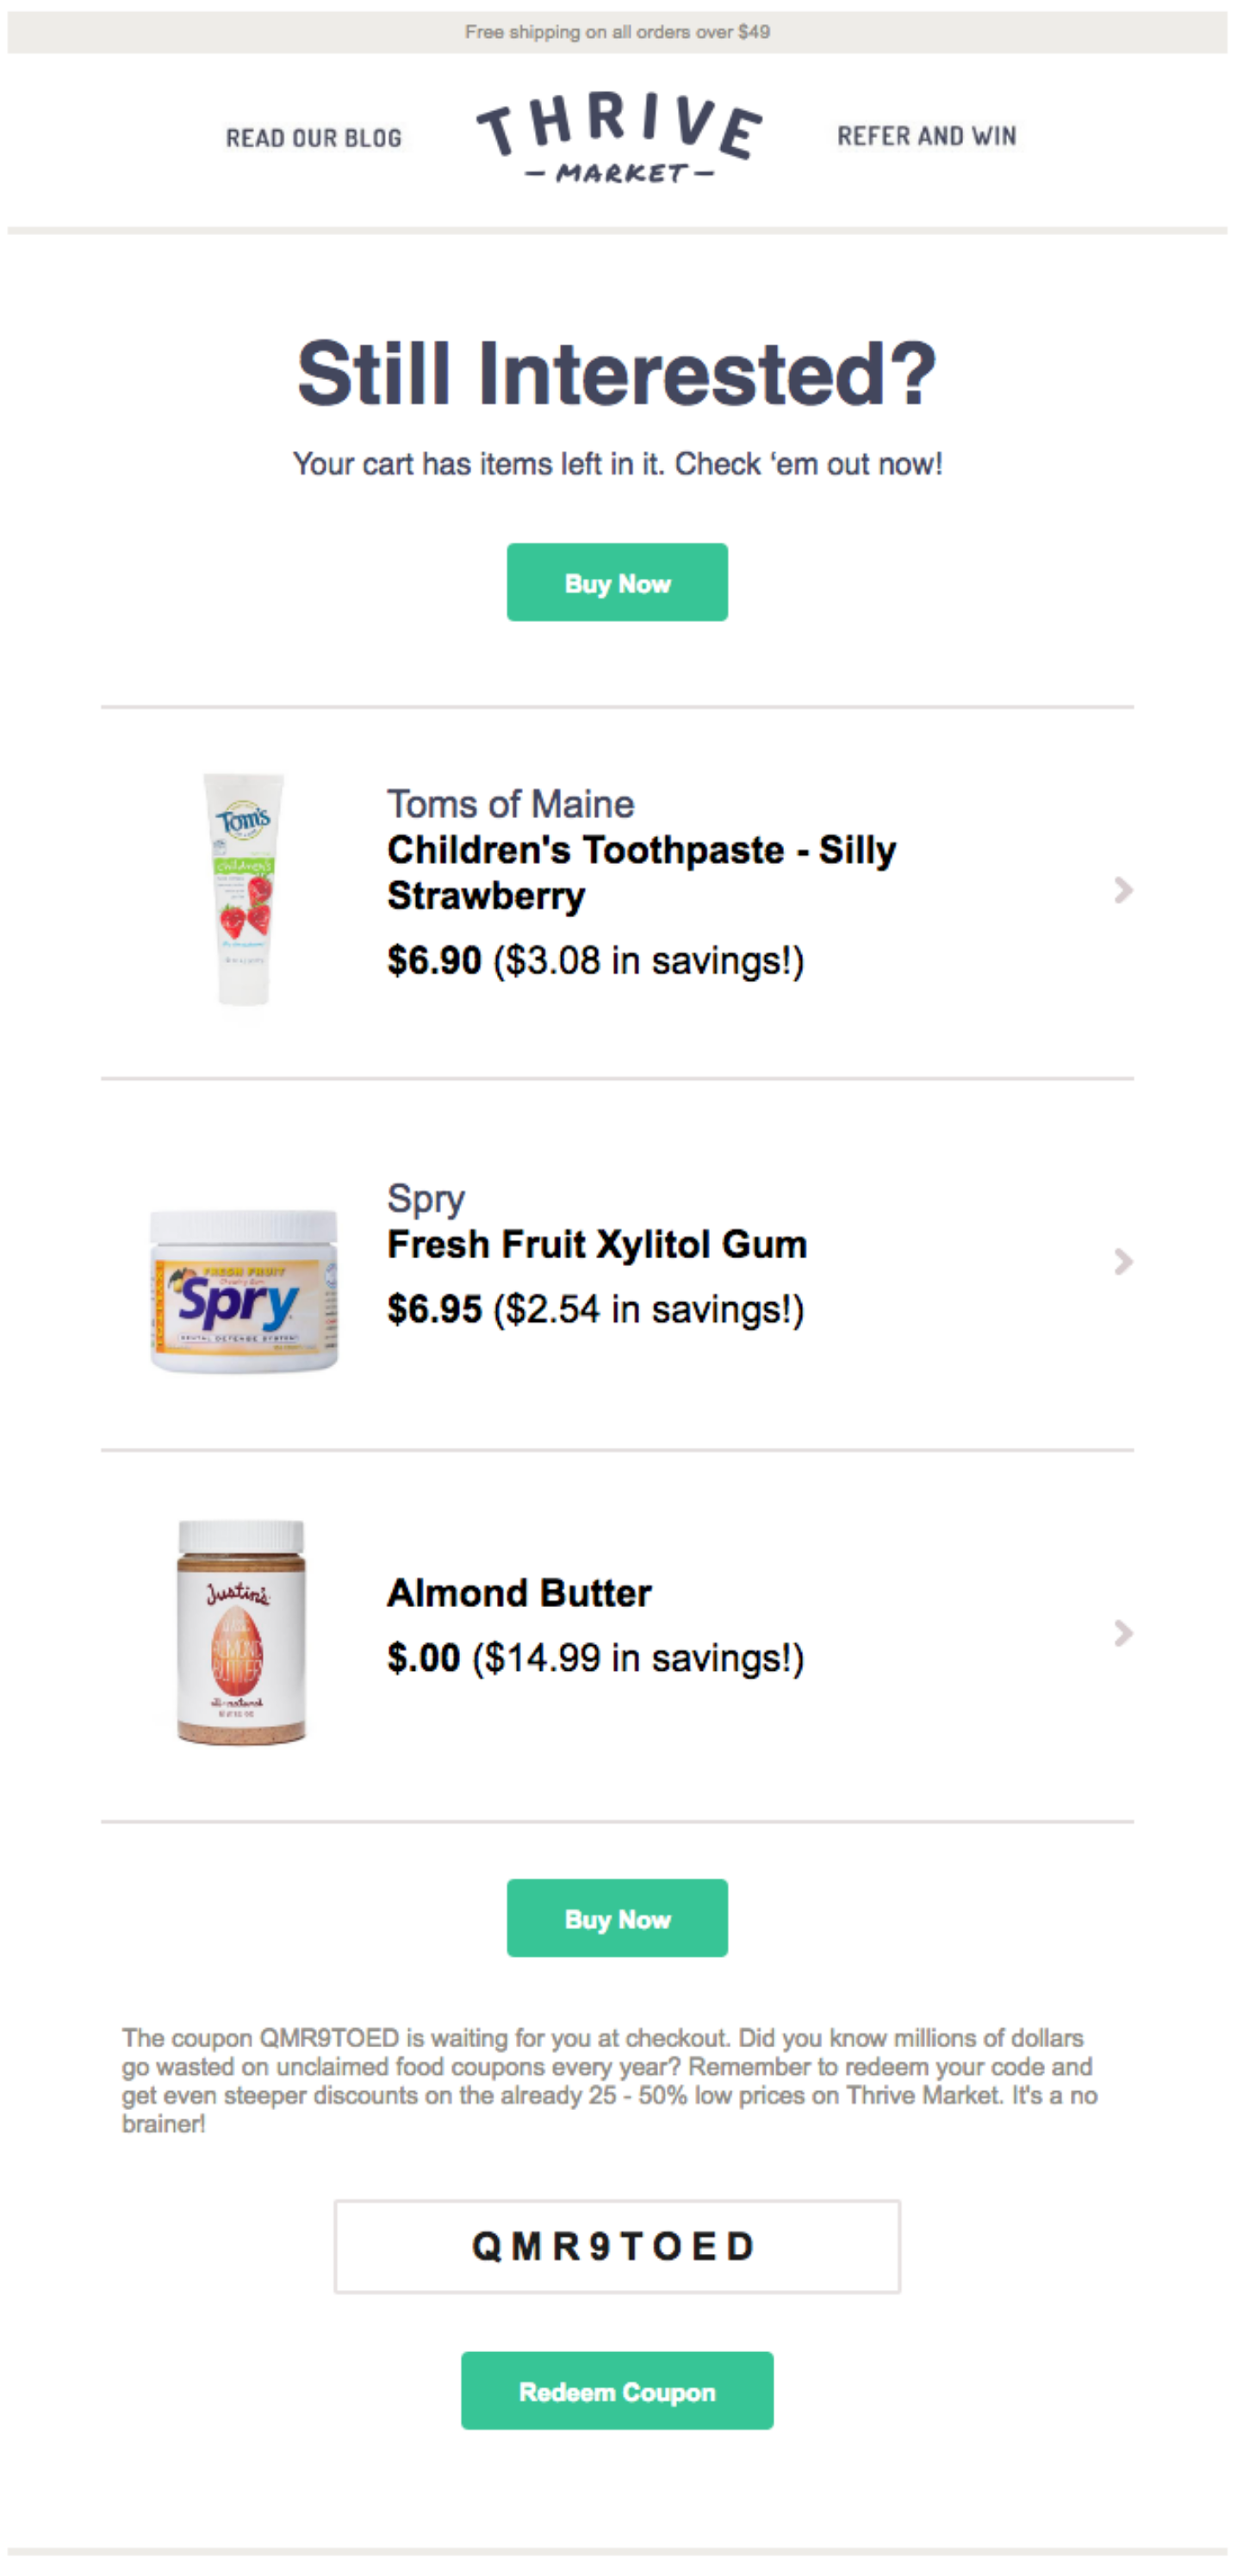 Thrive's email campaign that includes product recommendation methods to reengage interest